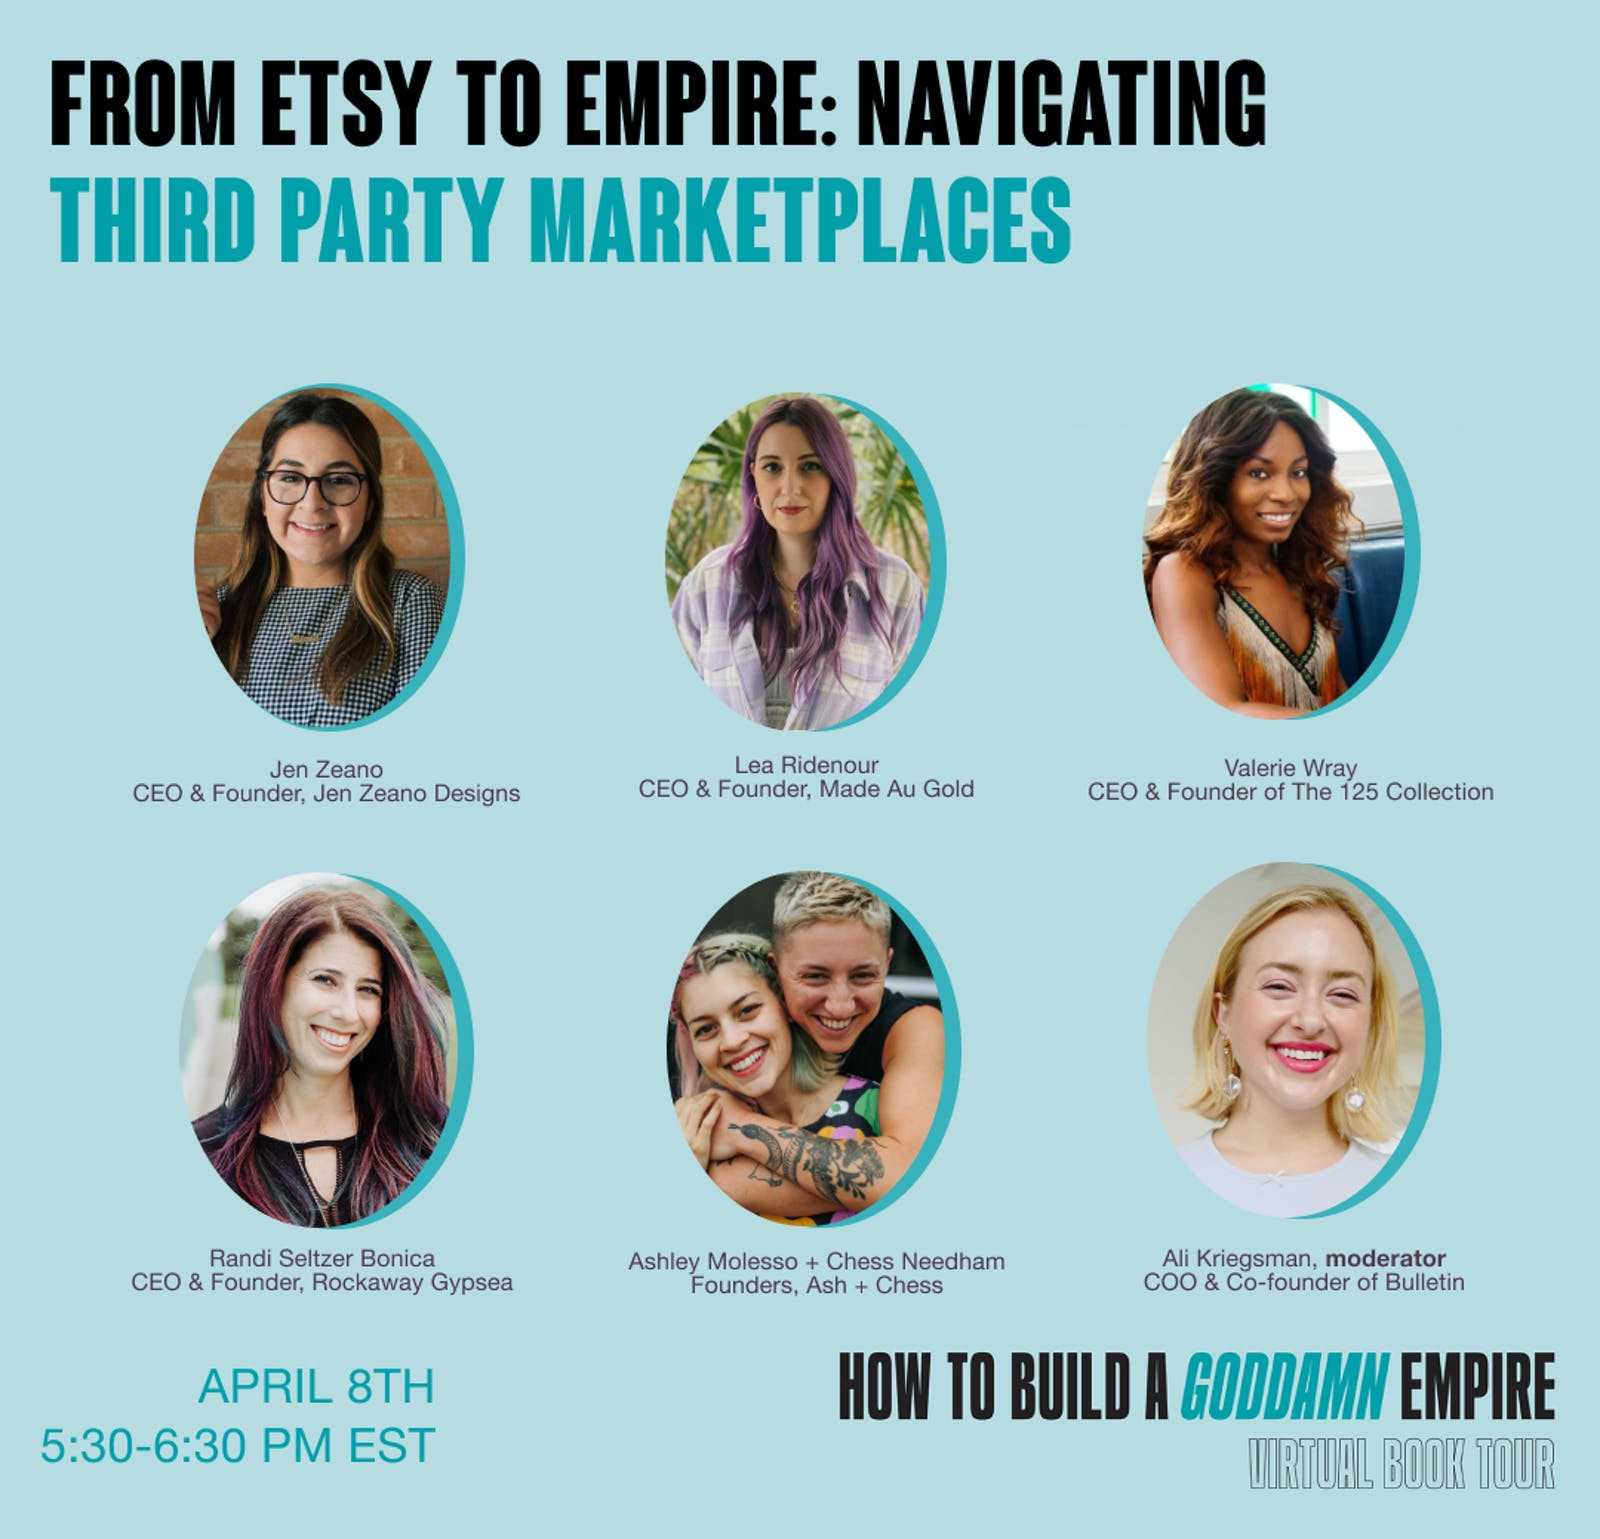 From Etsy to Empire: Navigating Third Party Marketplaces